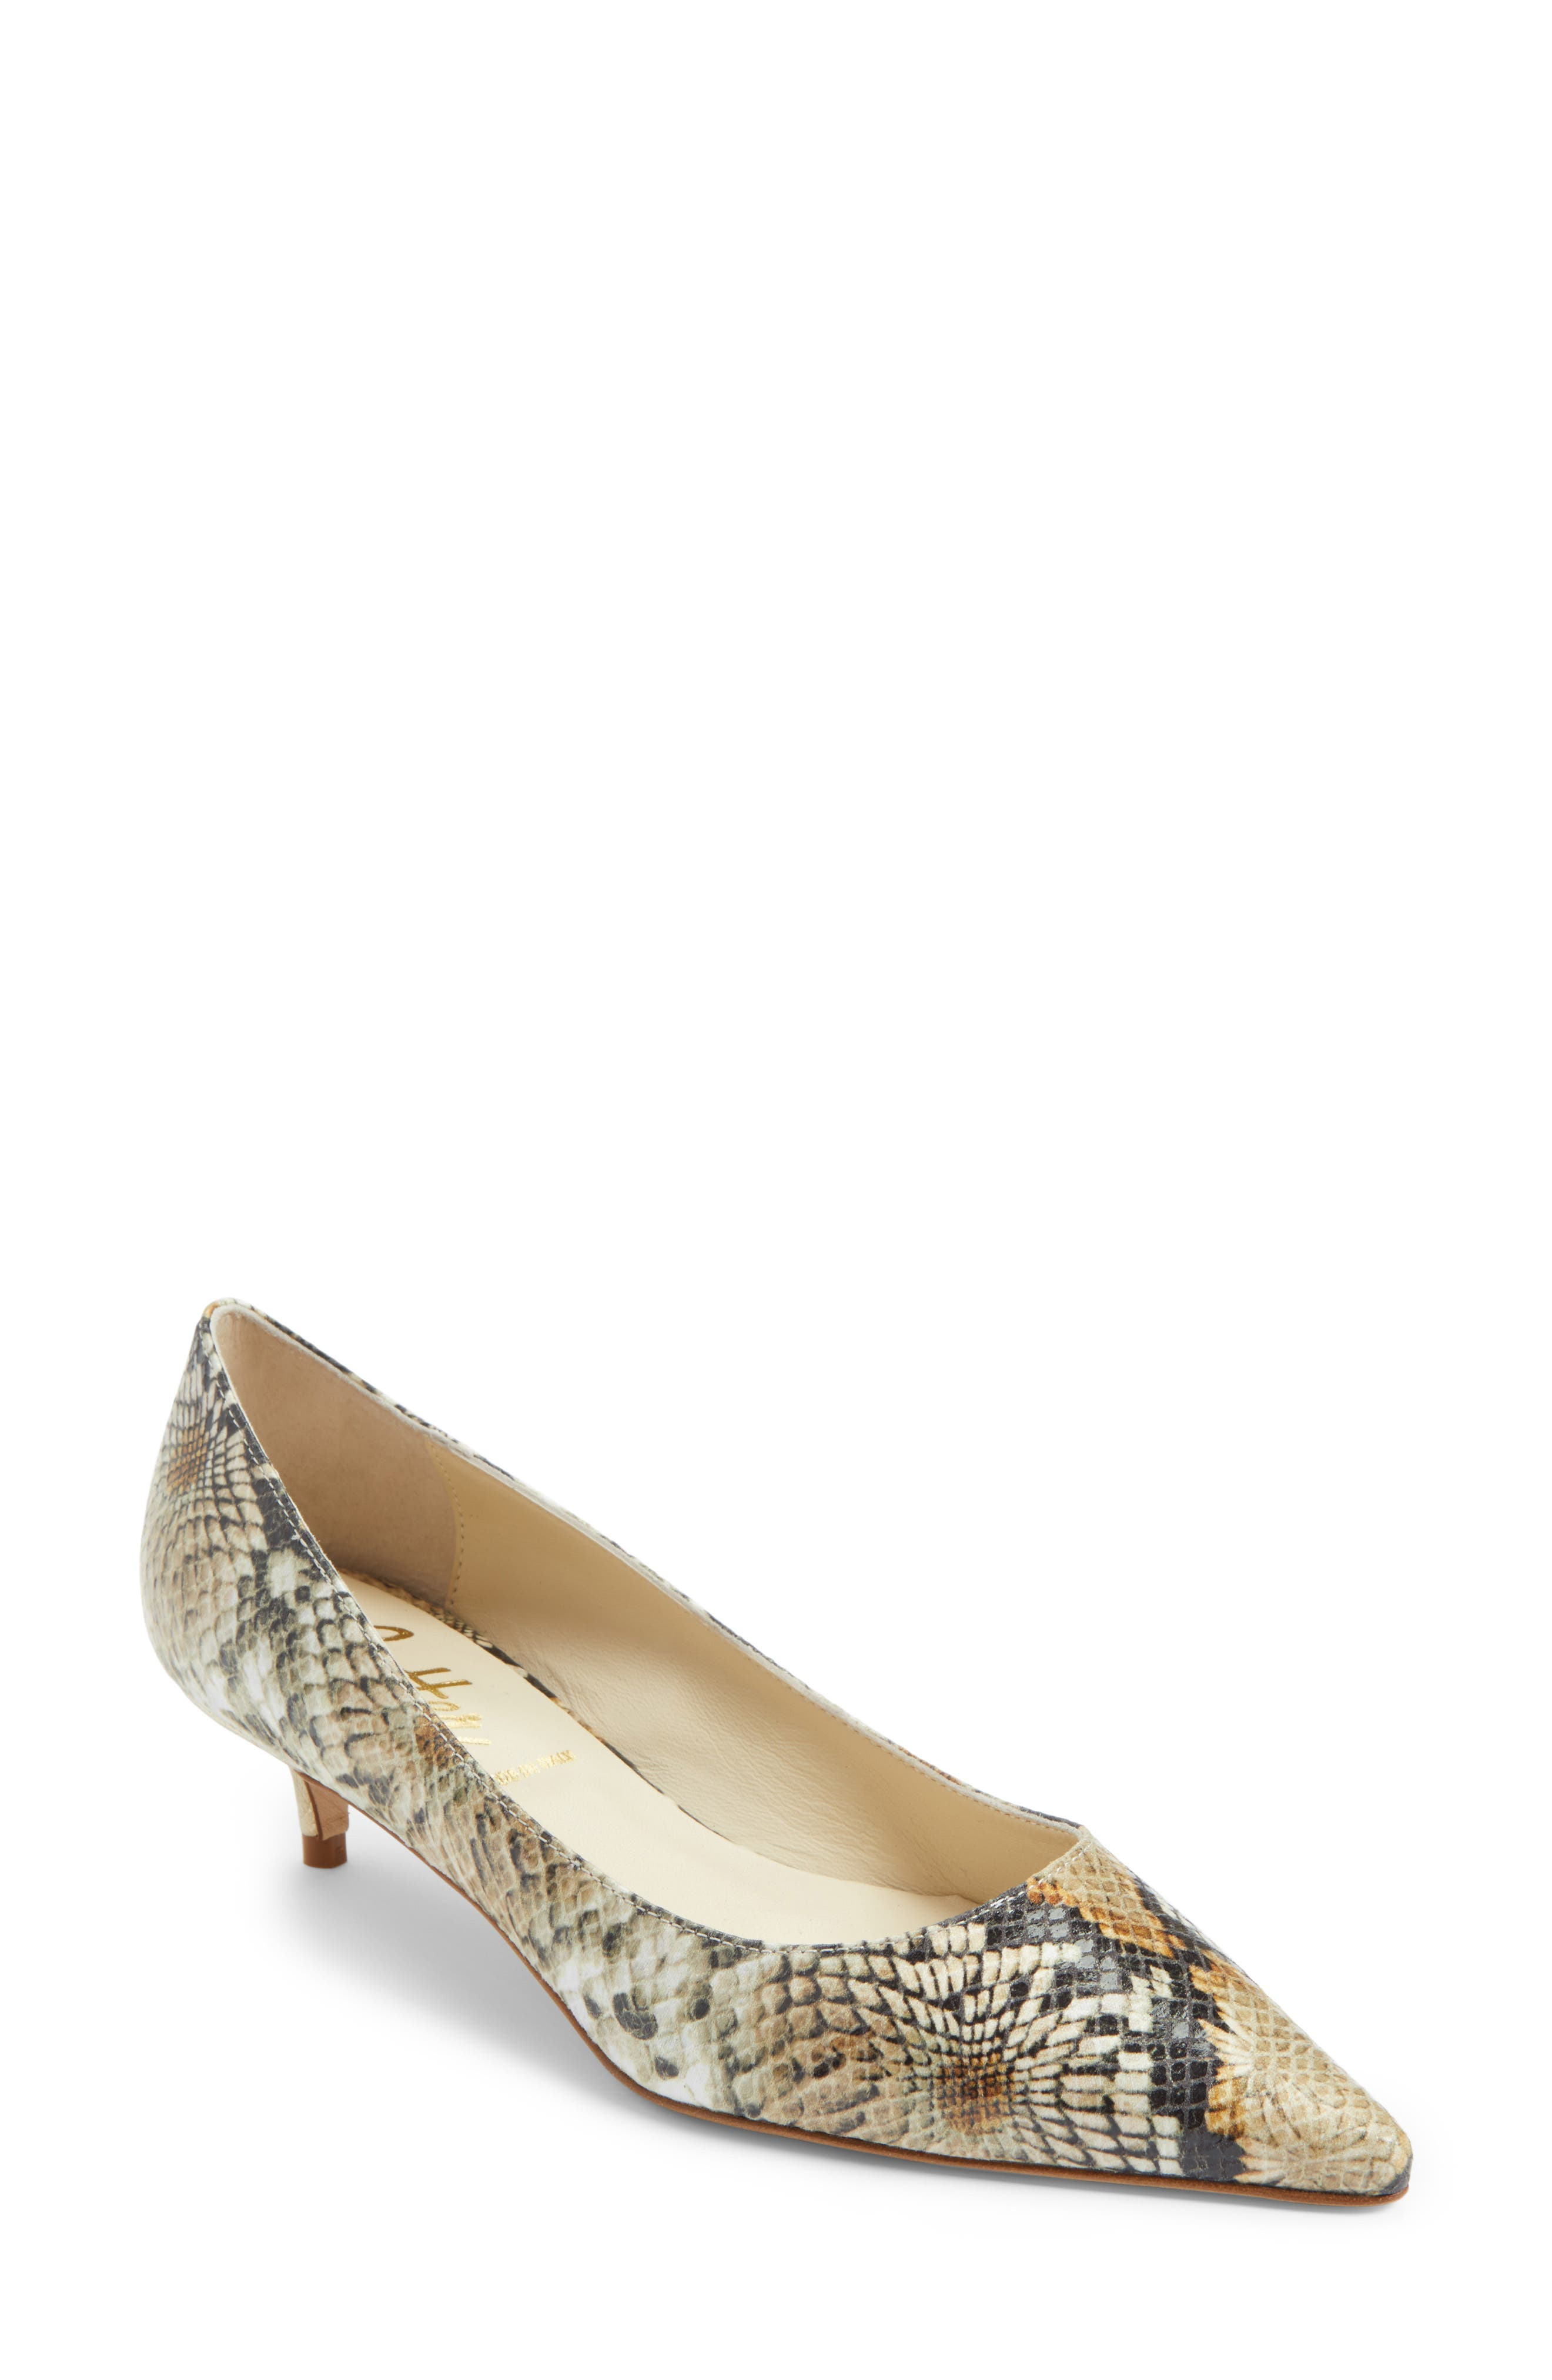 Butter Born Pointy Toe Pump,                             Main thumbnail 4, color,